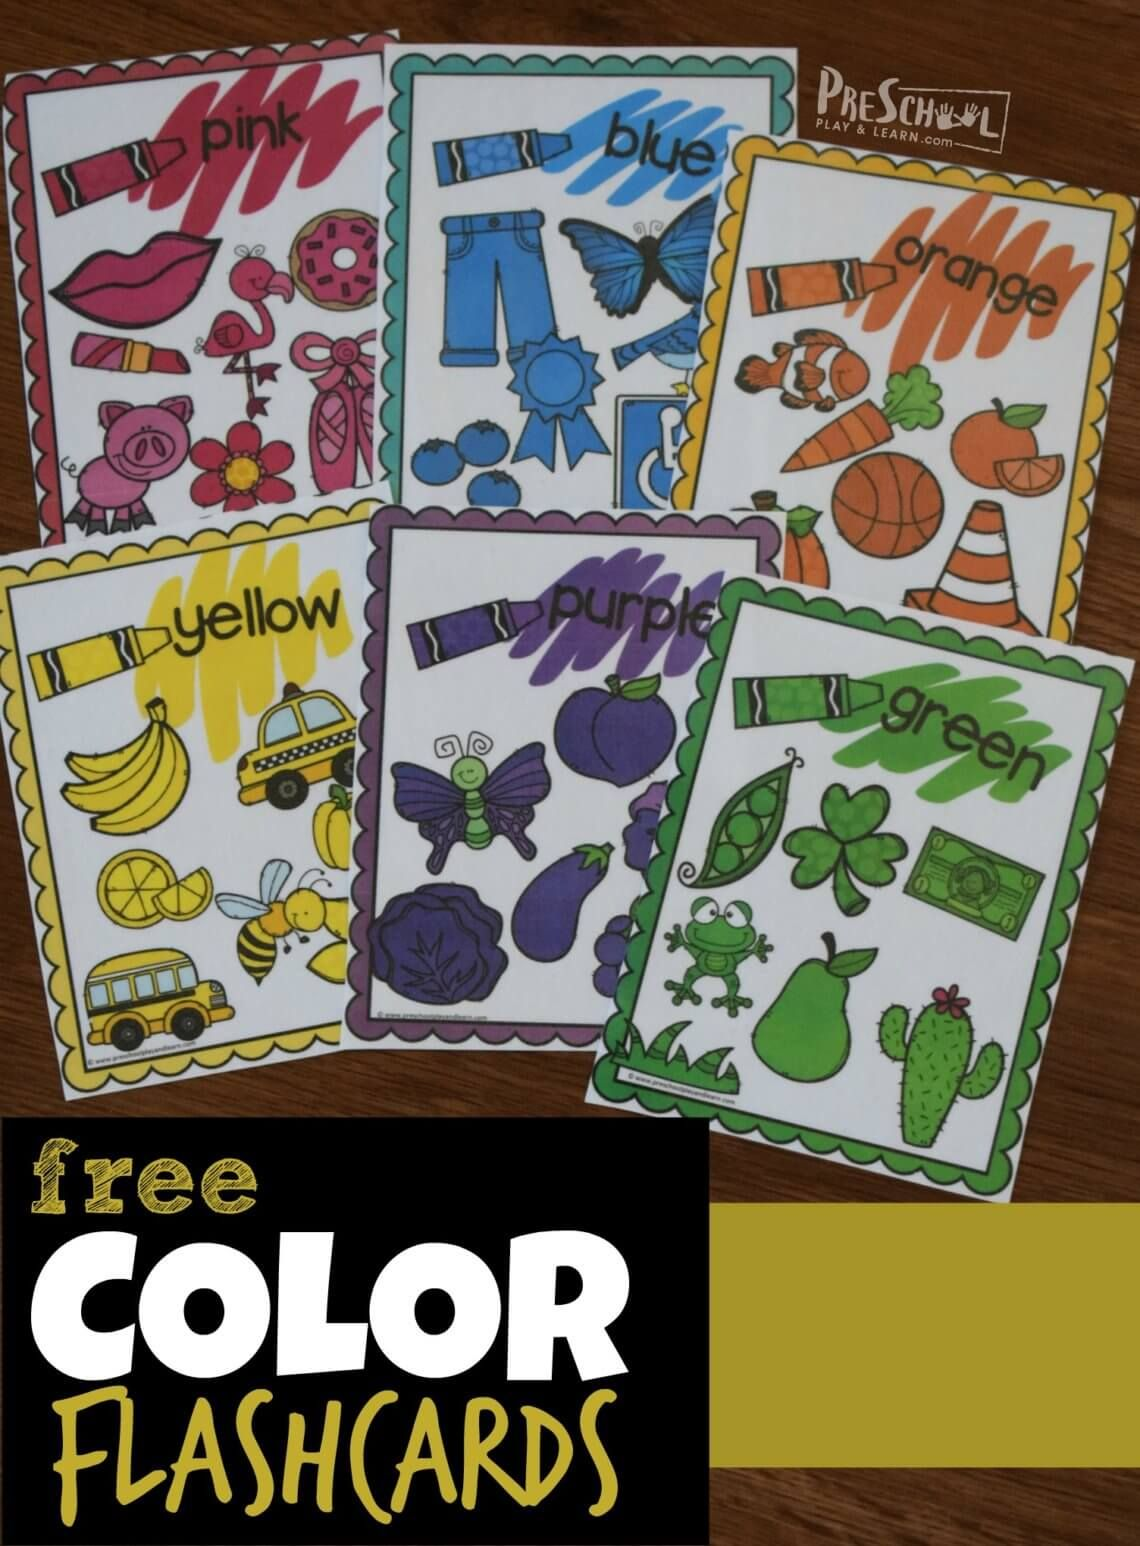 Free Color Flashcards Have So Many Clever Uses To Teach